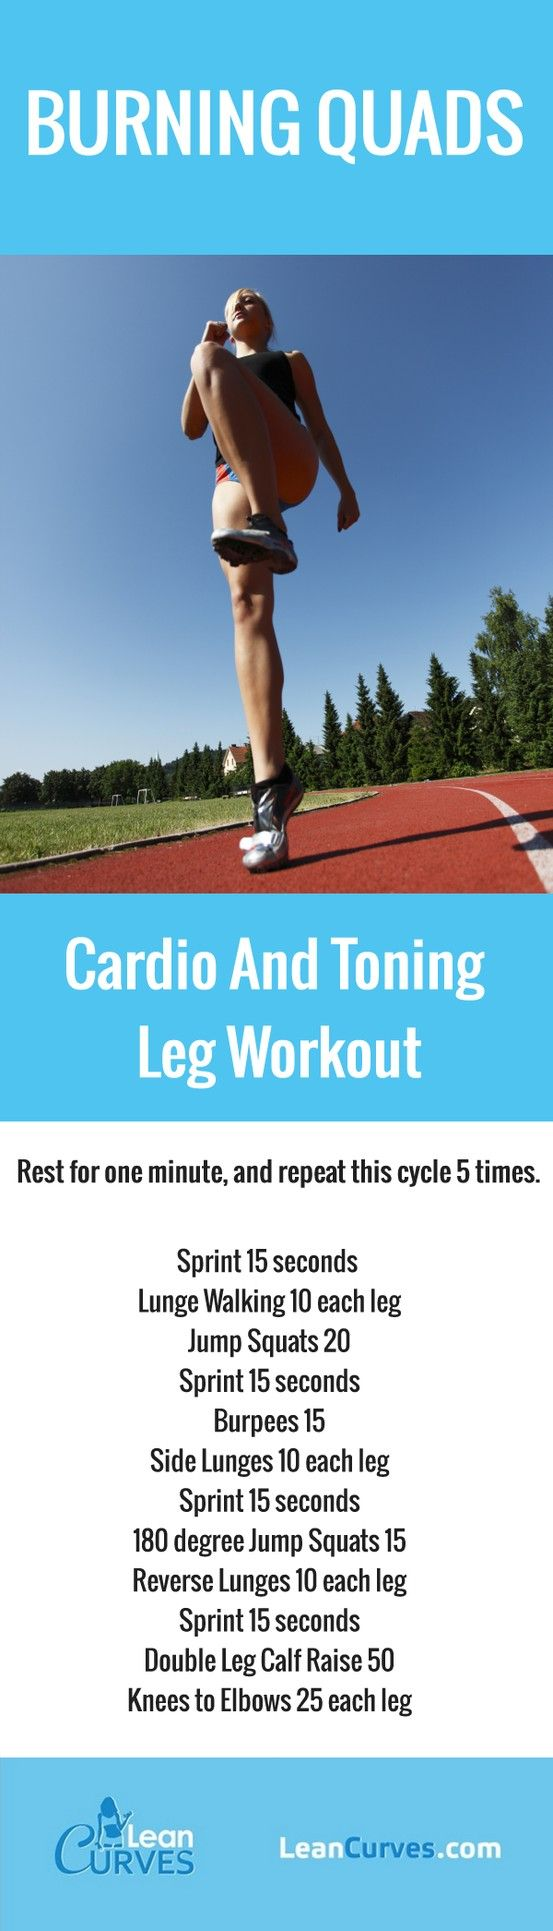 Burning Quads Cardio And Toning Leg Workout...if I feel it the next day I know it works #getfit